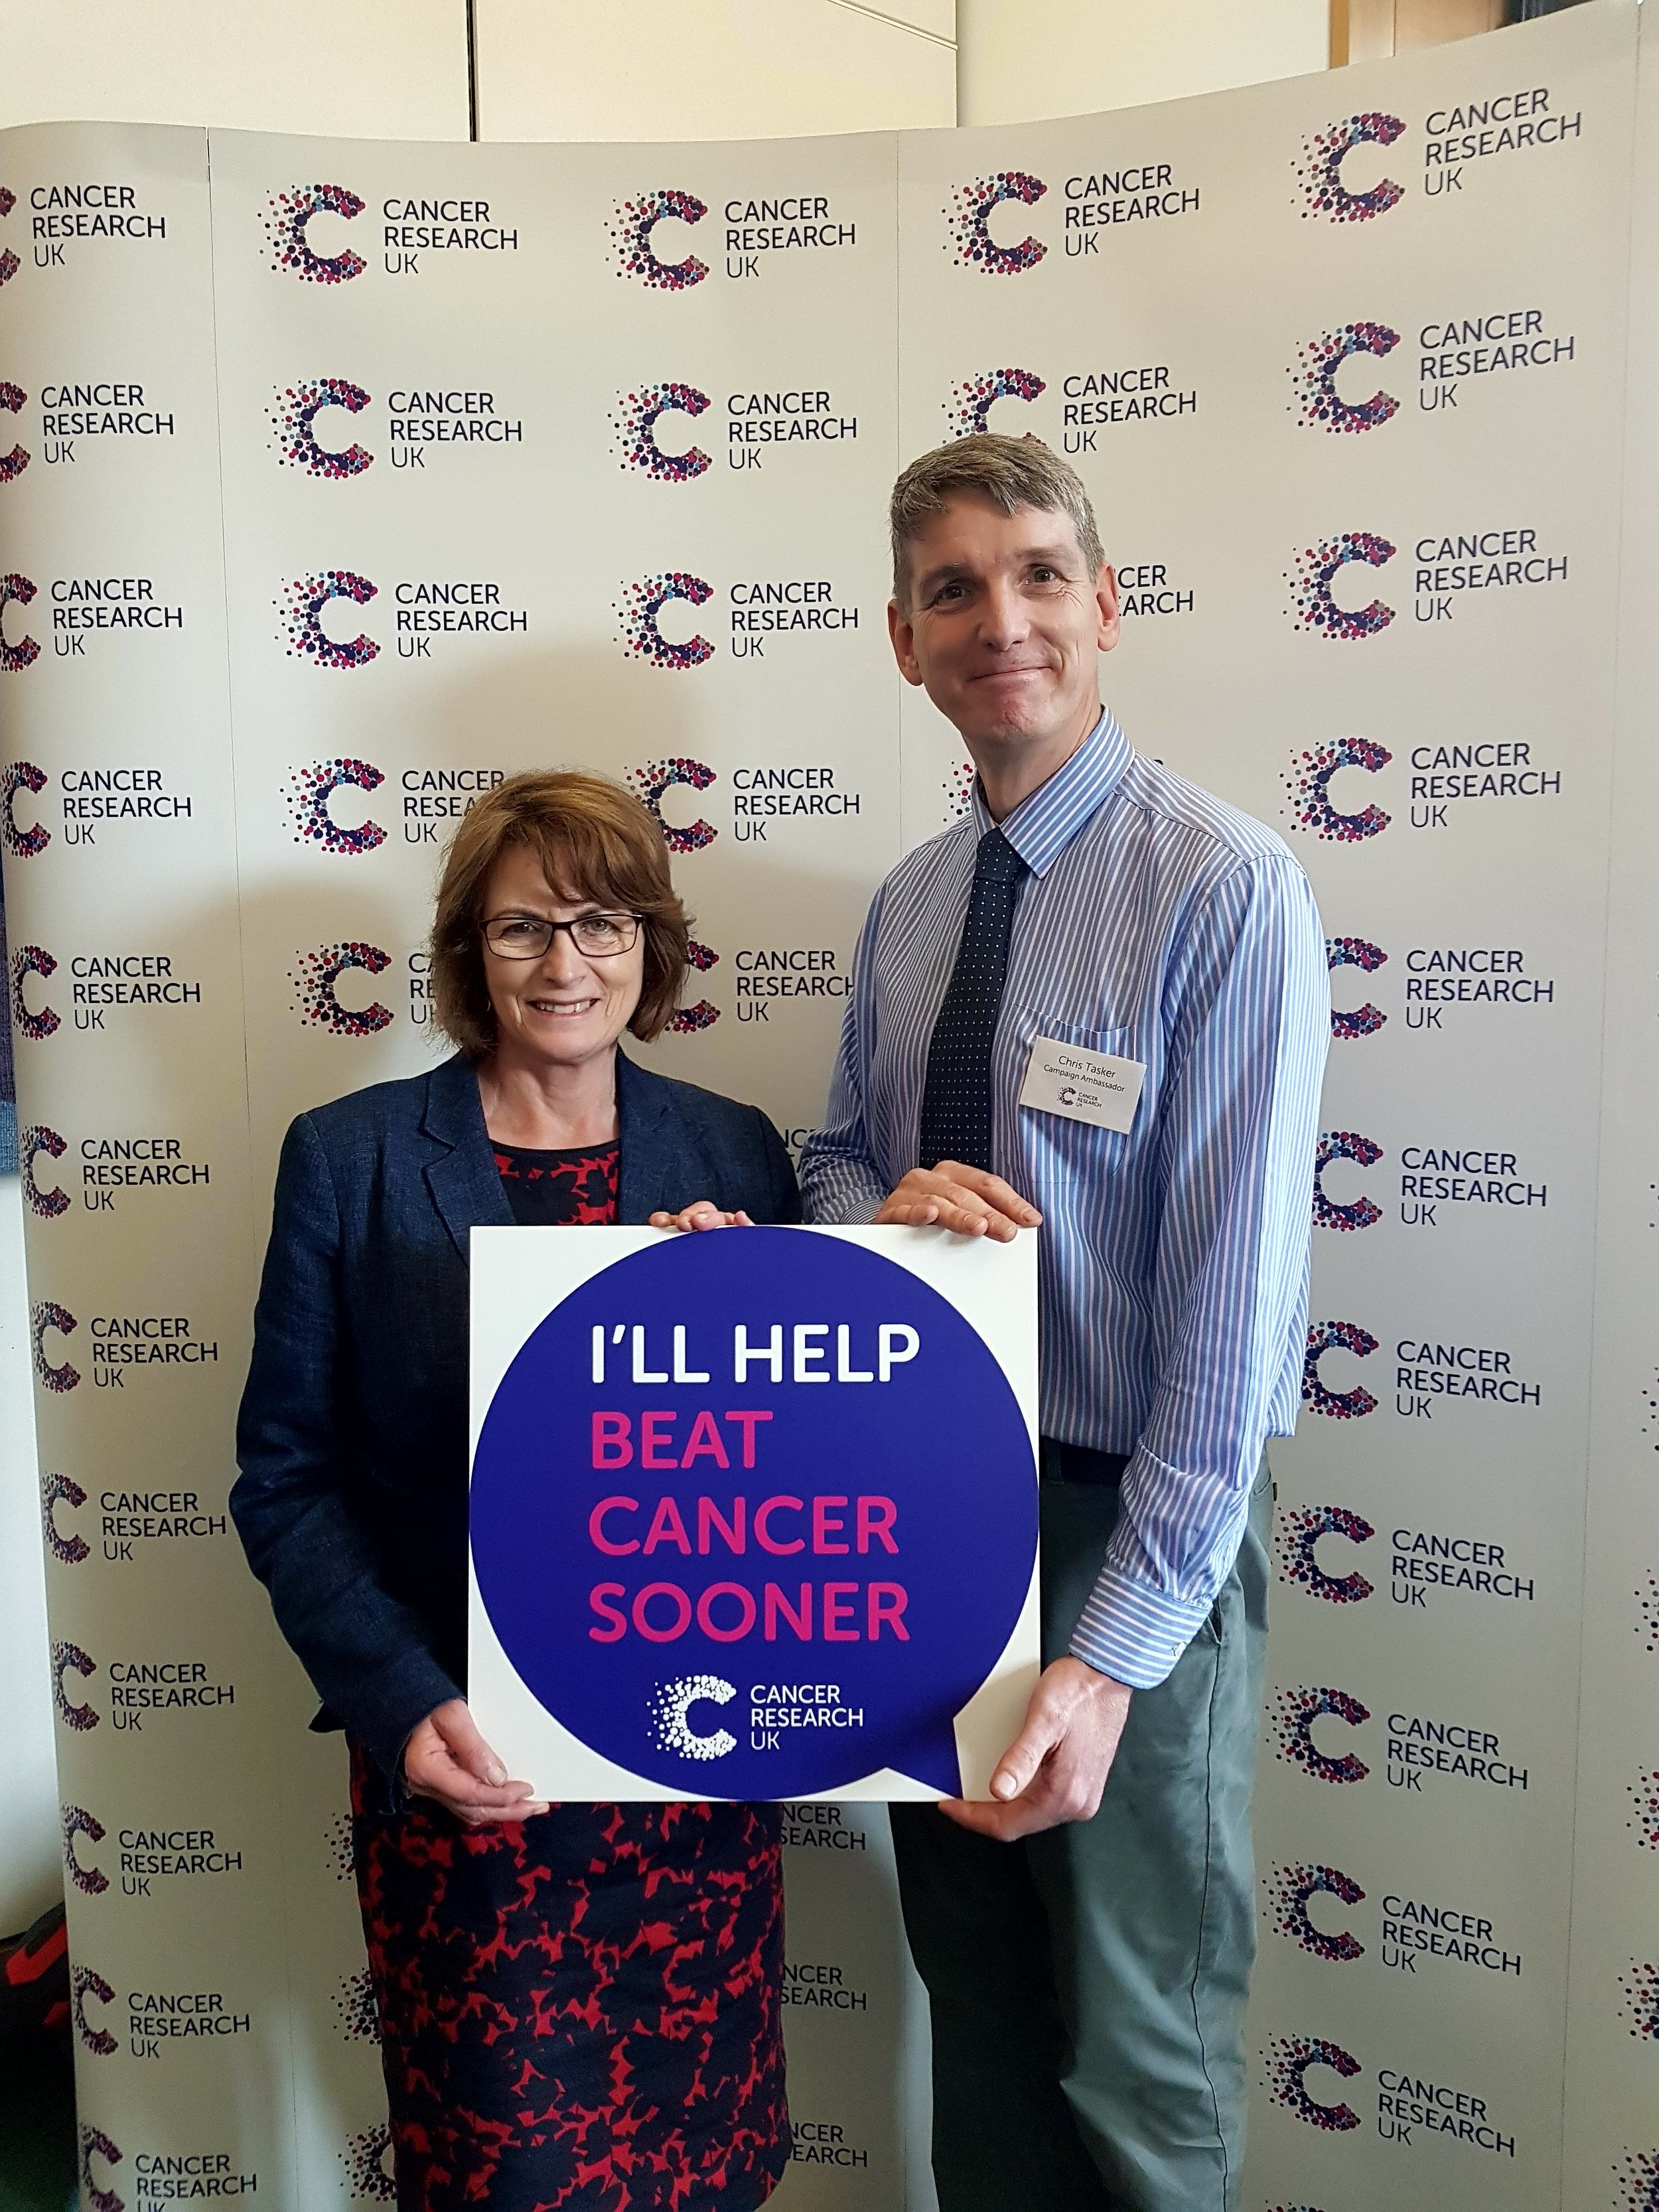 Meeting Cancer Research UK to discuss the challenges we face in Liverpool.